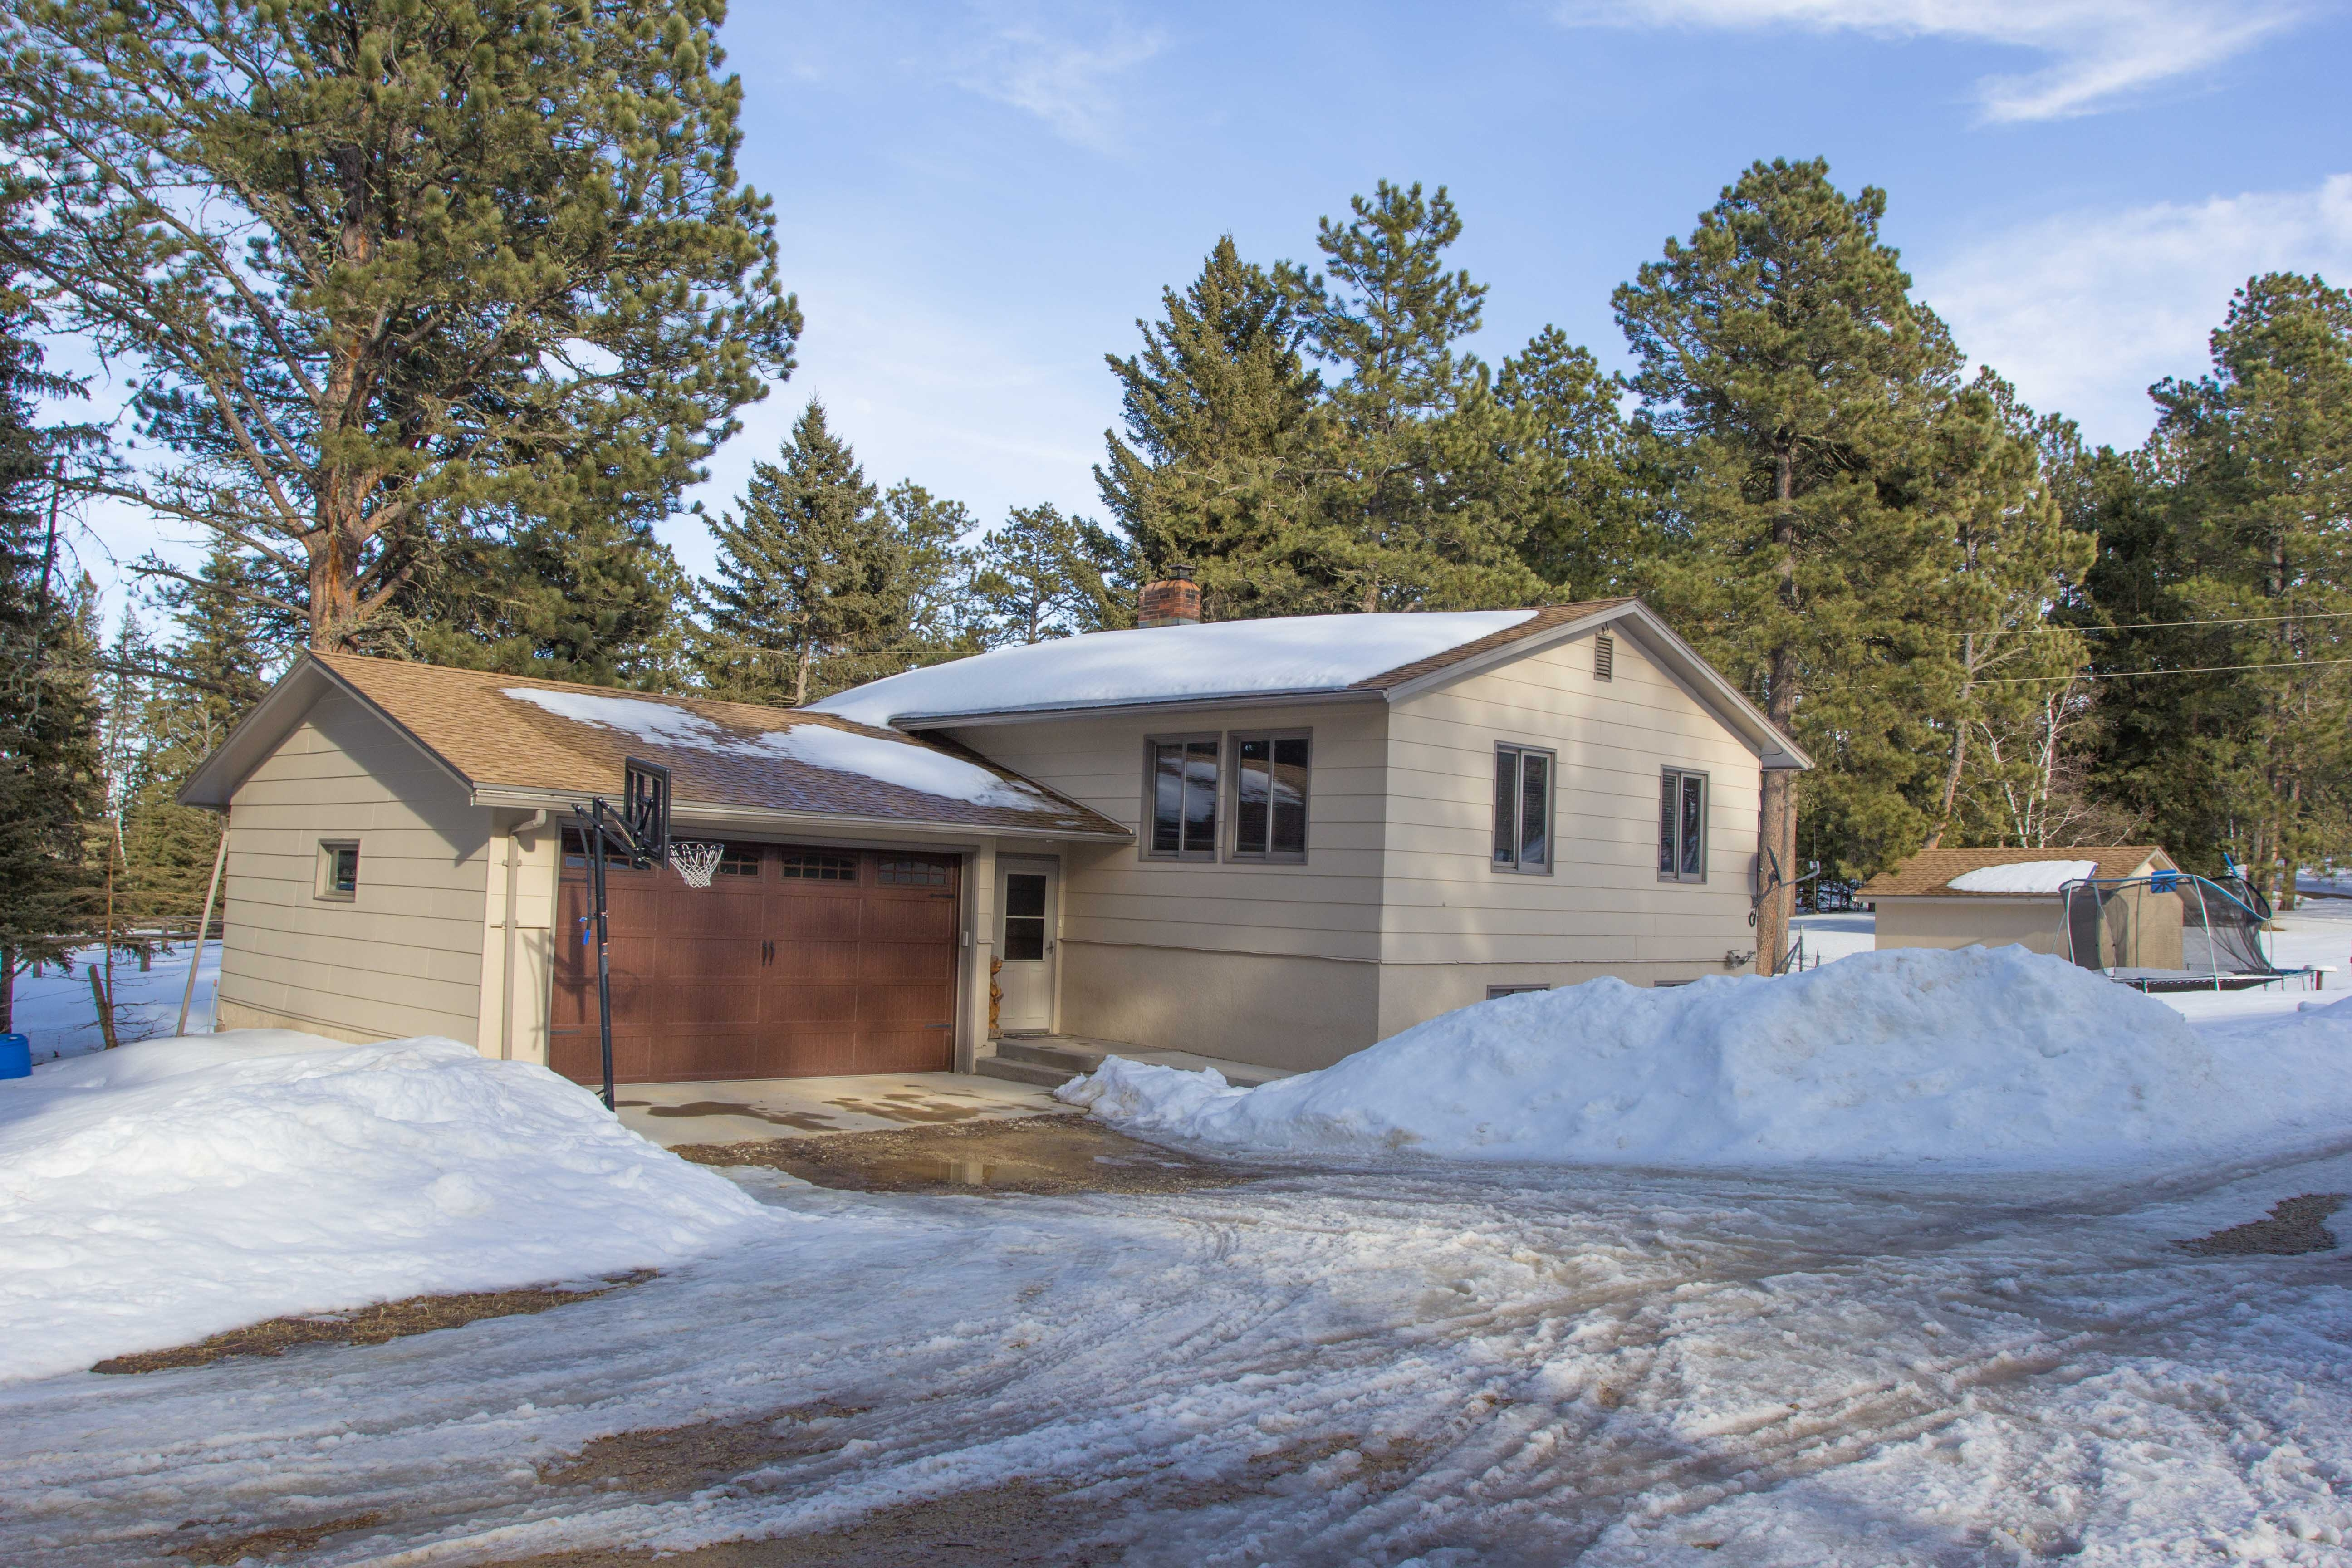 4 Bedroom Home with 5 Acres and Horse Barn - Deadwood